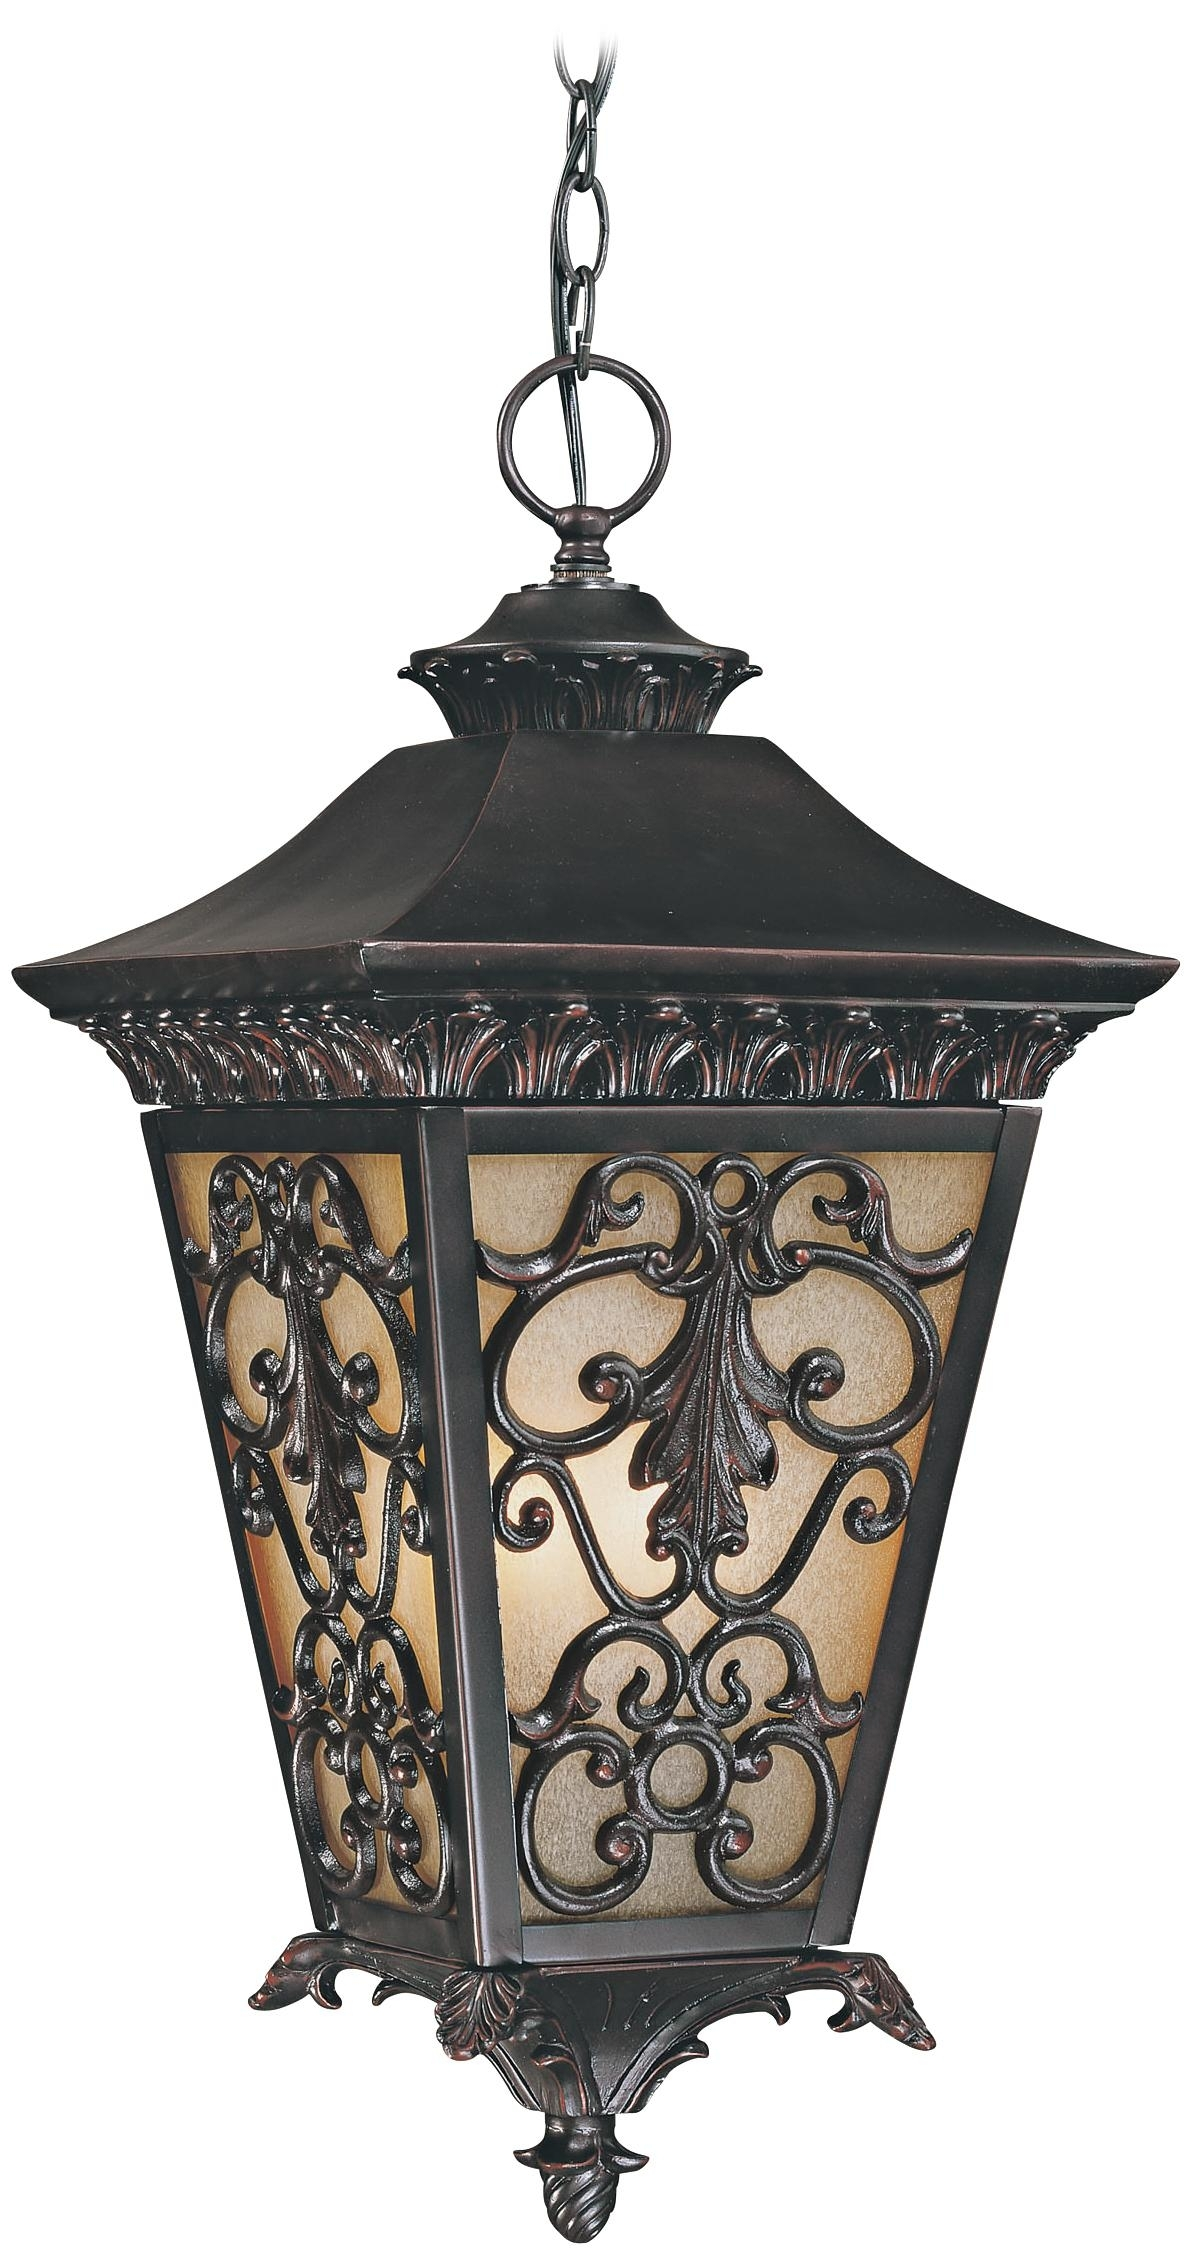 Bientina Collection 23 1/4 High Outdoor Hanging Light – | Tuscan Old Regarding Outdoor Hanging Lights (View 9 of 15)